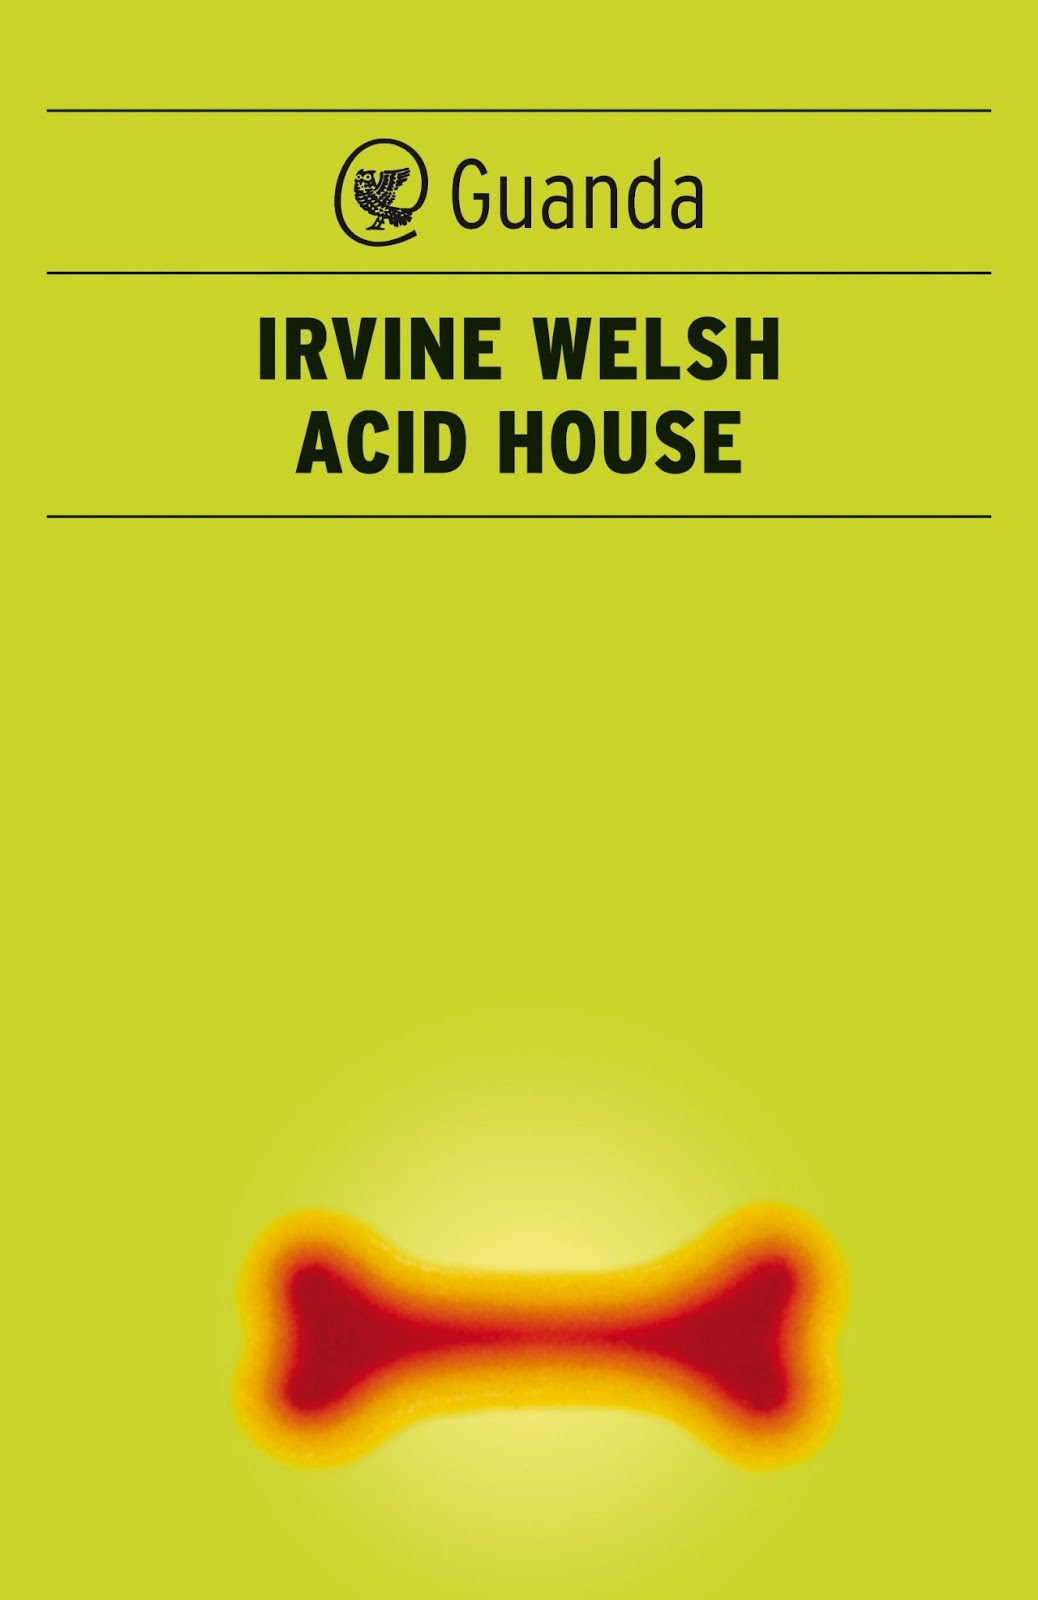 La firma cangiante acid house for Acid house 90s